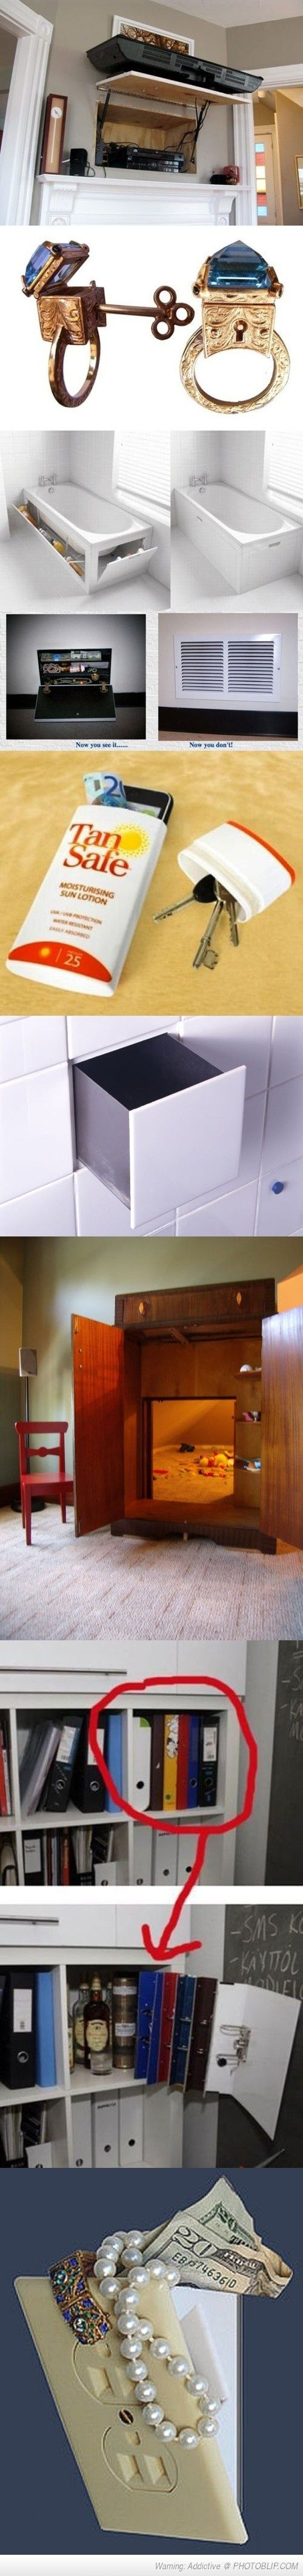 Awesome hiding places! ,